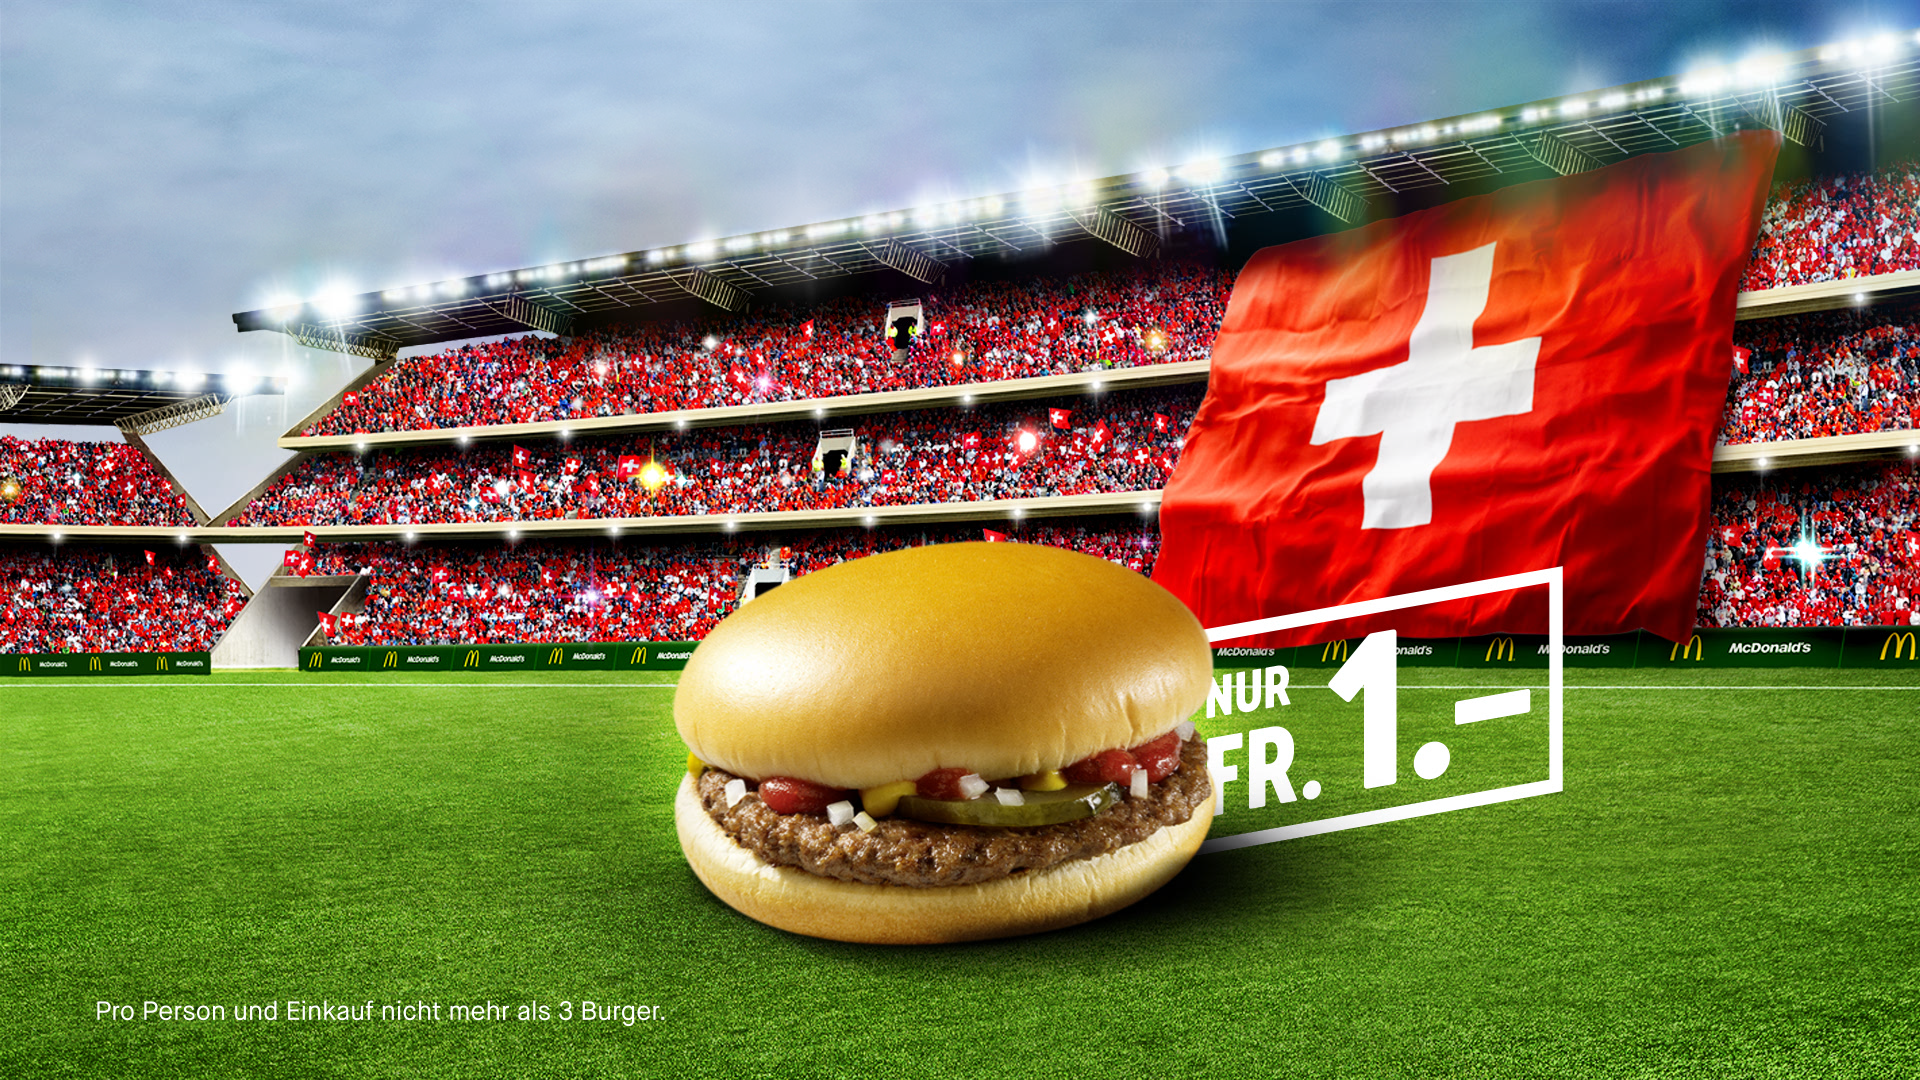 A McDonald's Hamburger in a Soccer stadium with the Swiss flag in the background